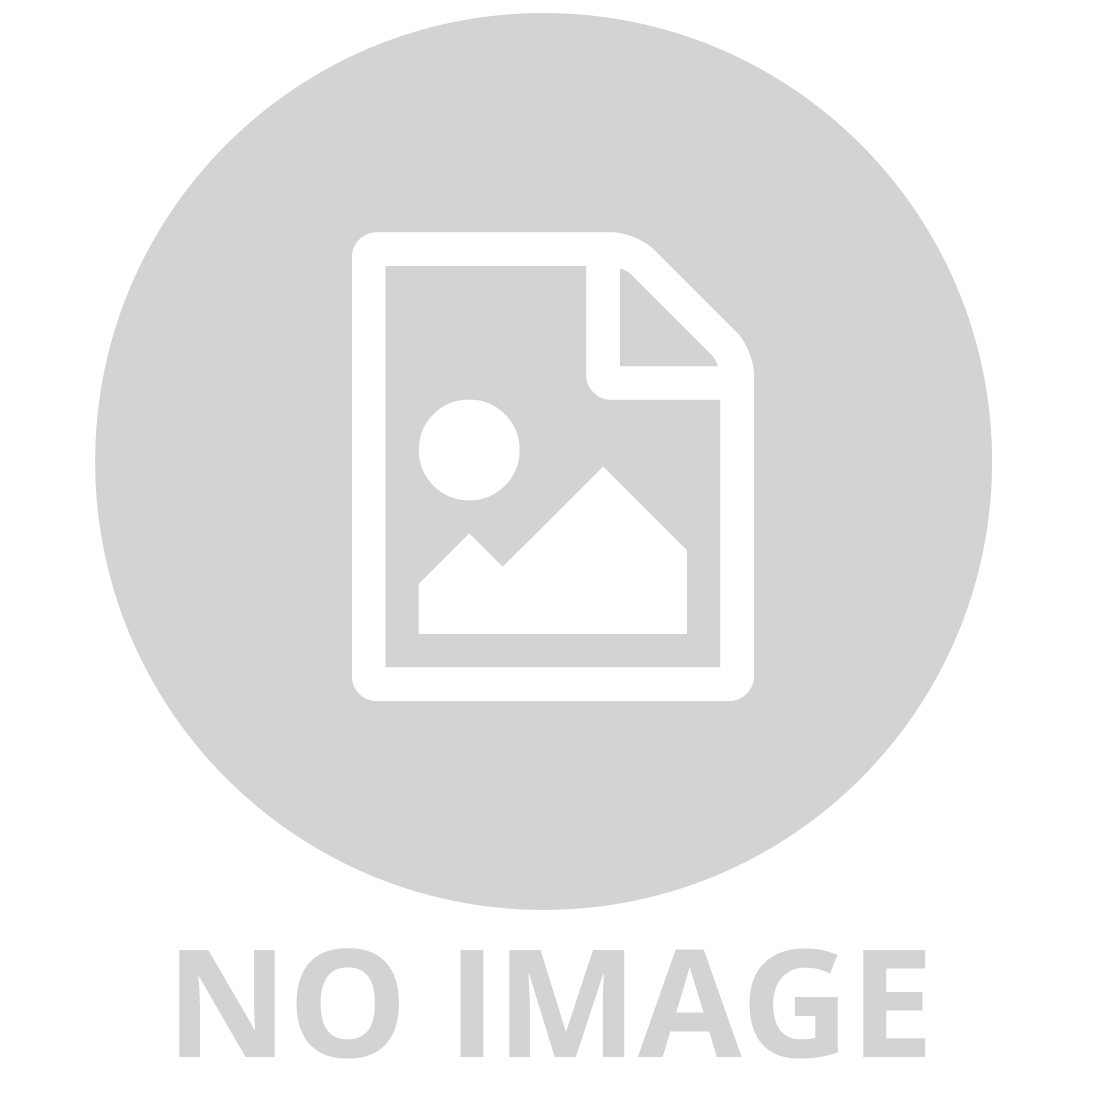 WINDSPEED KITES PATCHWORK DELTA SINGLE STRING 1.8 WINGSPAN